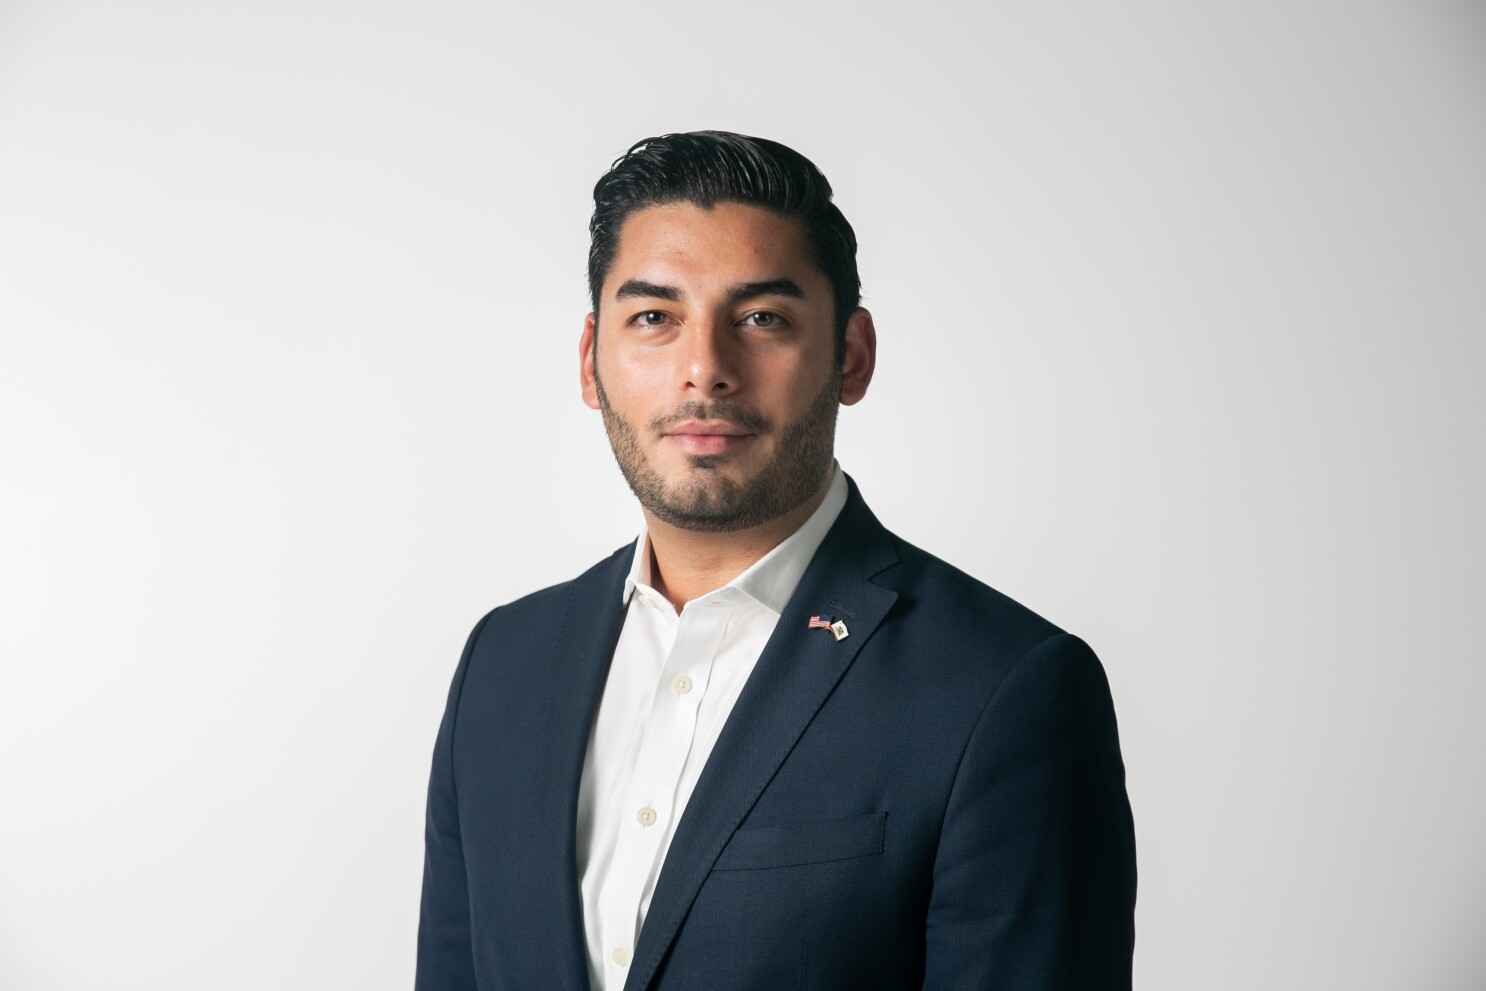 Meet Ammar Campa-Najjar, candidate for the 50th Congressional District